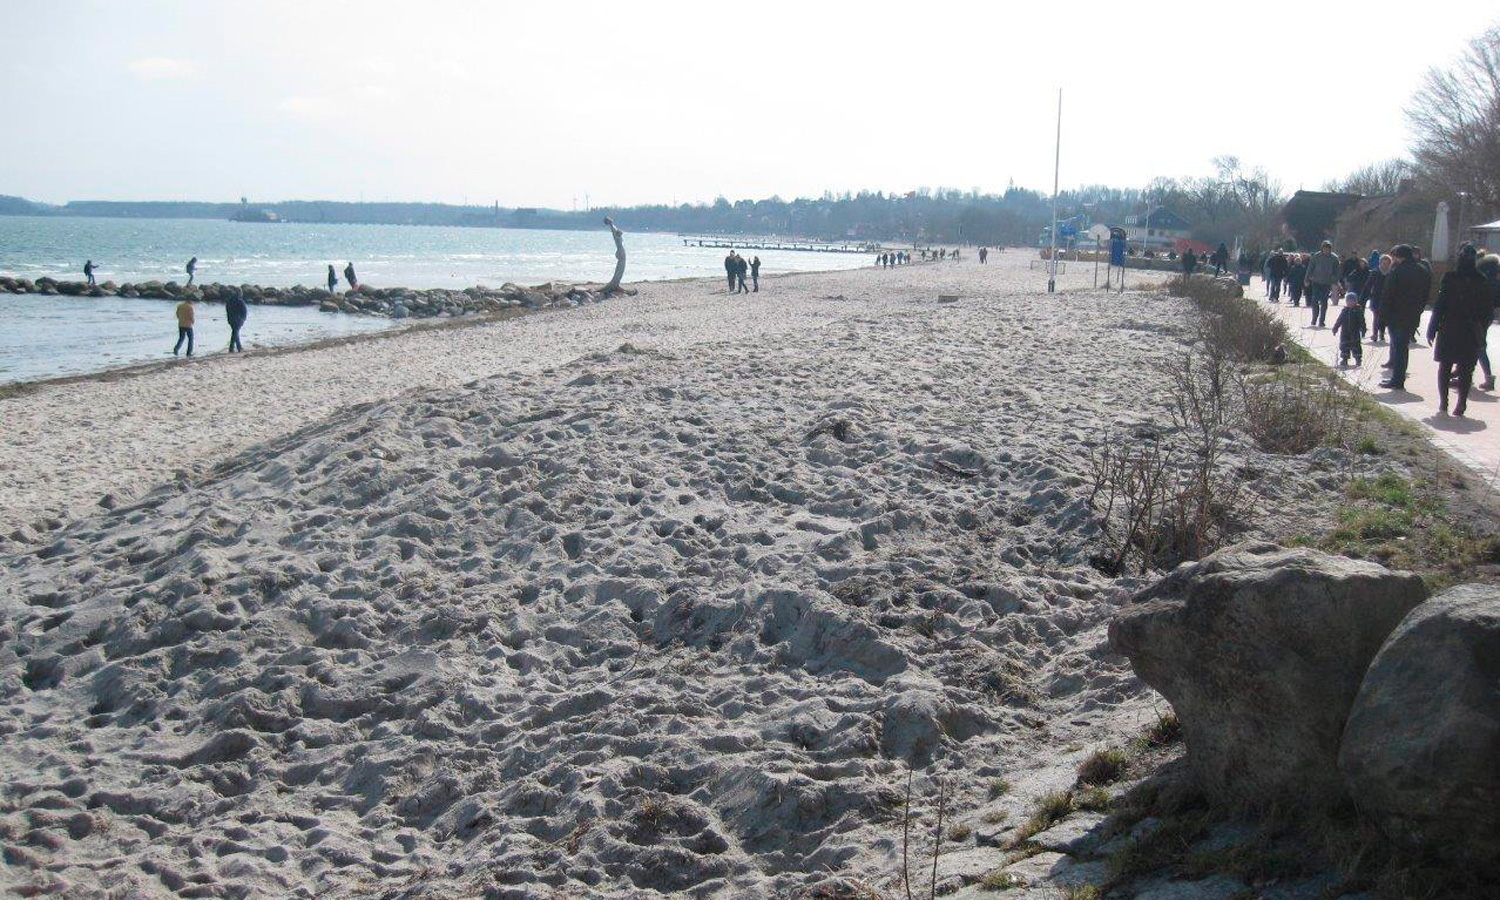 A finished dune system constructed by beach wrack, before being vegetated.